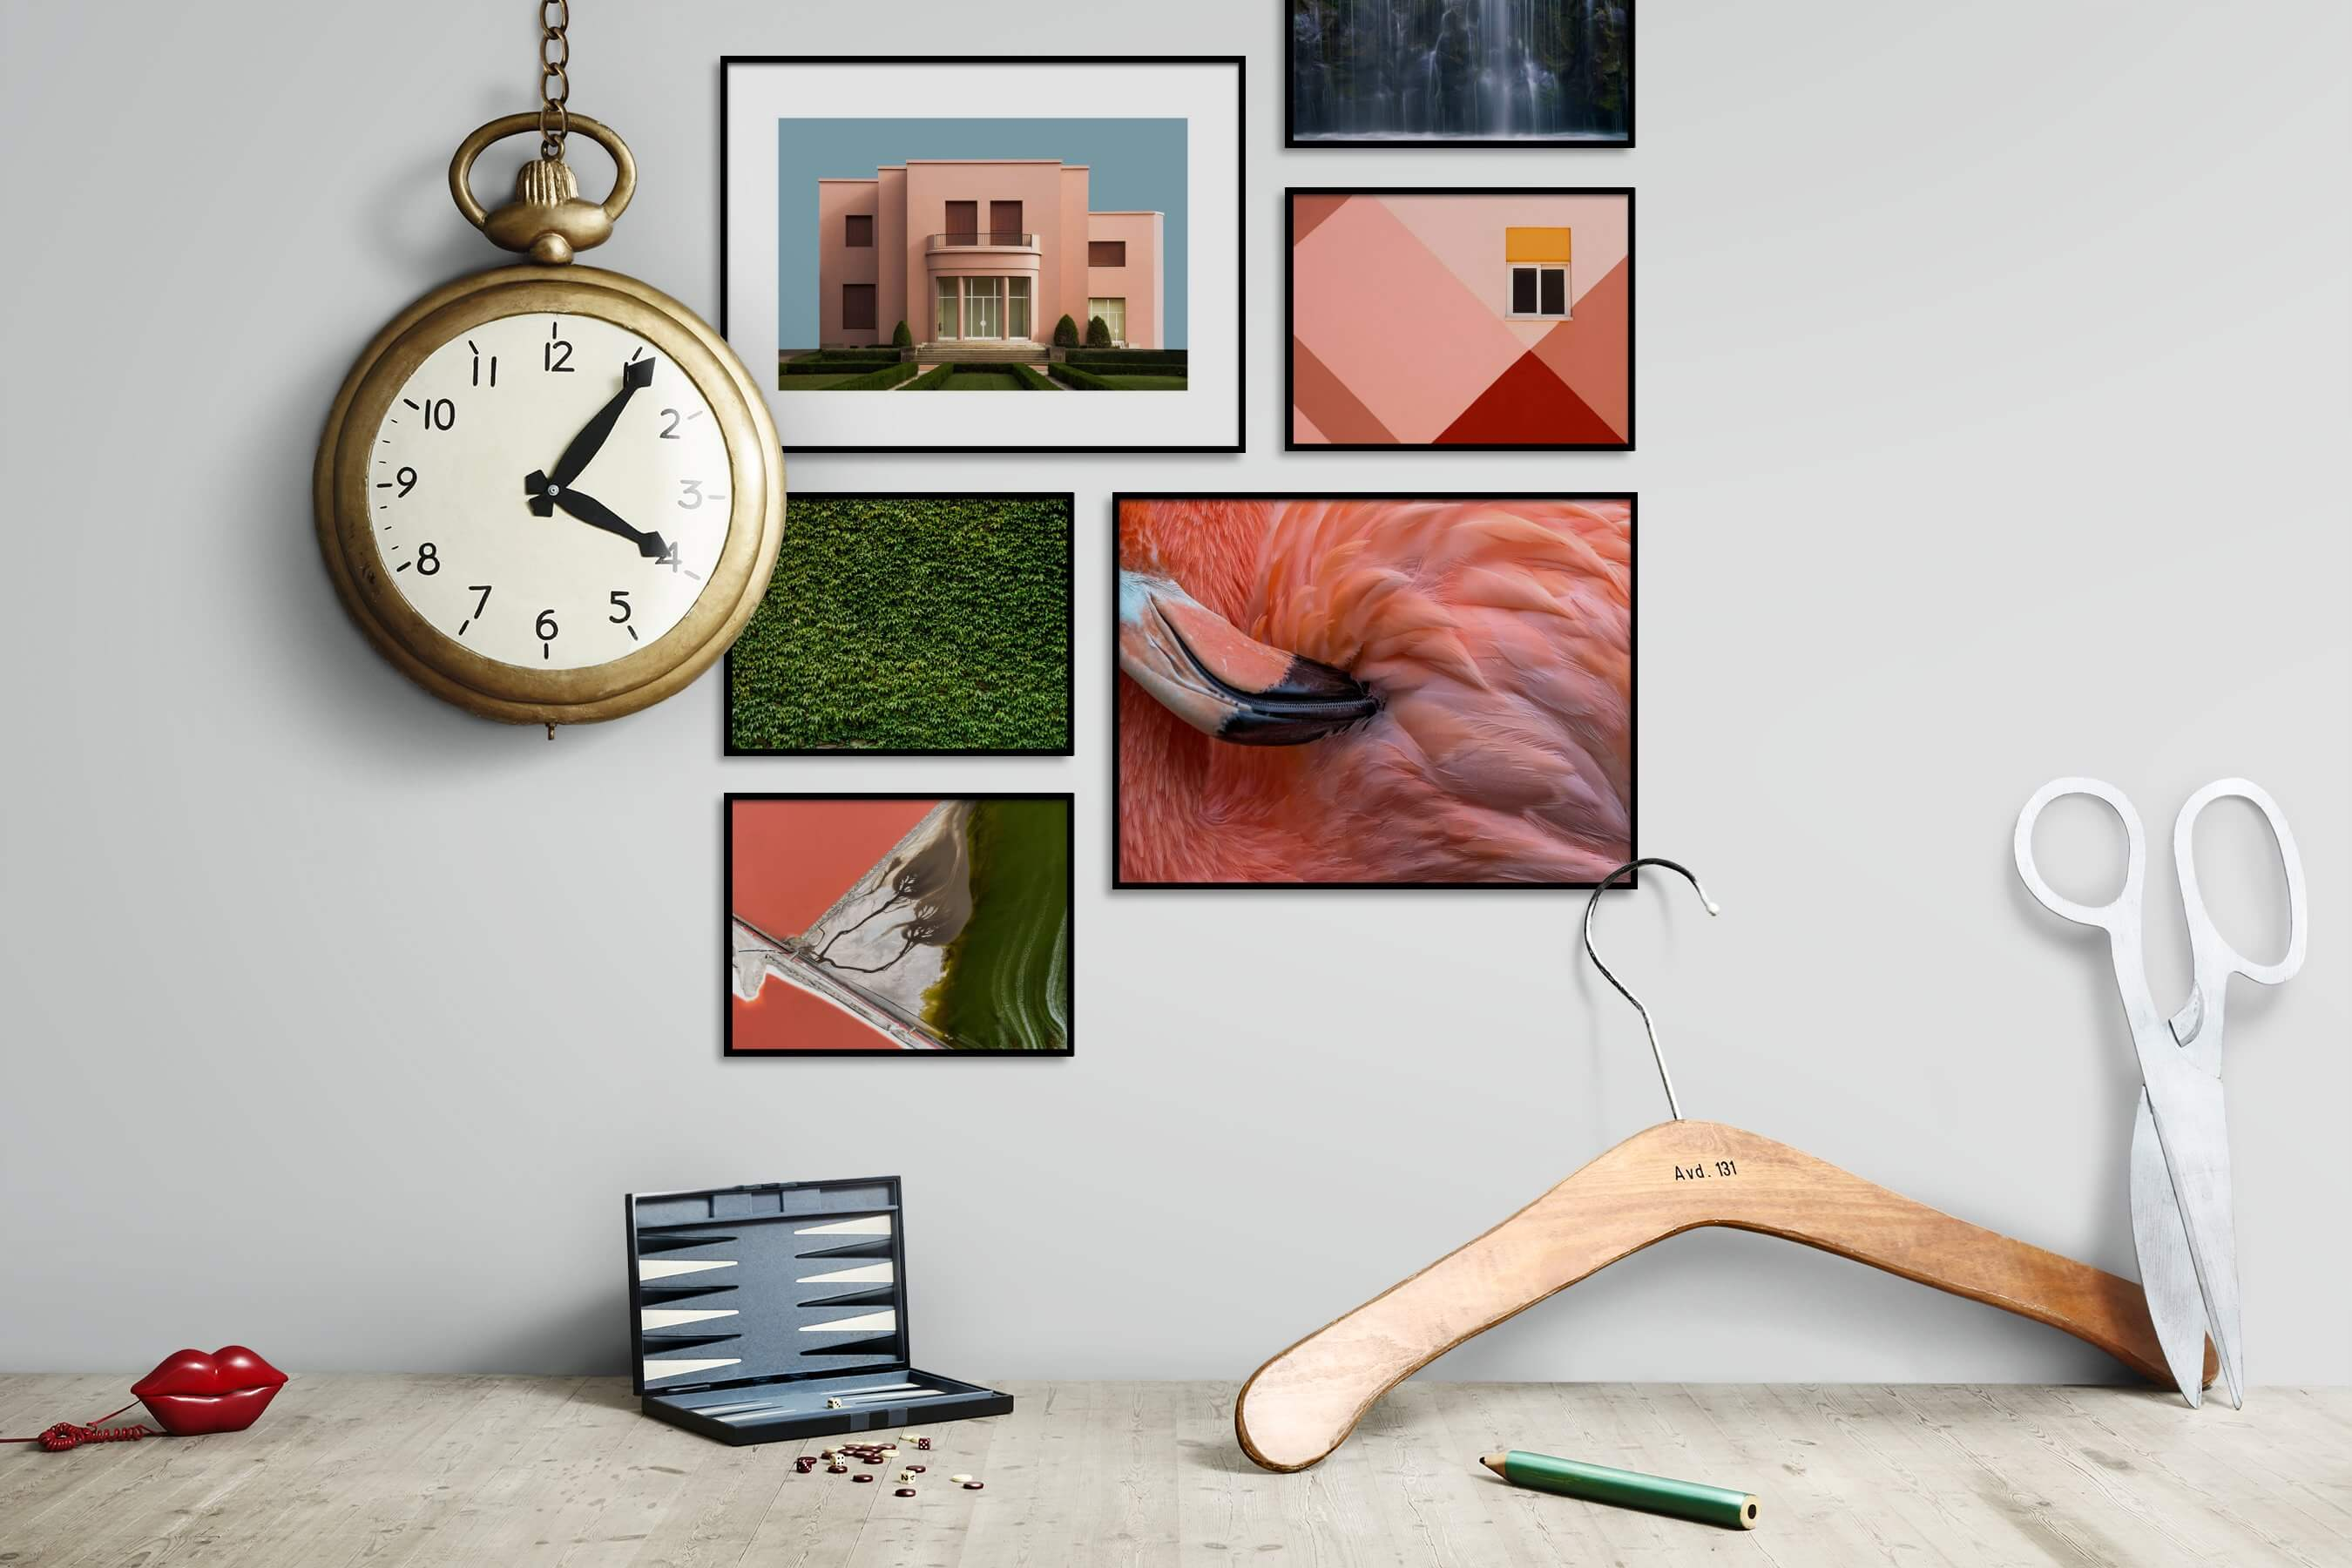 Gallery wall idea with six framed pictures arranged on a wall depicting For the Moderate, For the Maximalist, Flowers & Plants, Animals, Nature, and Mindfulness